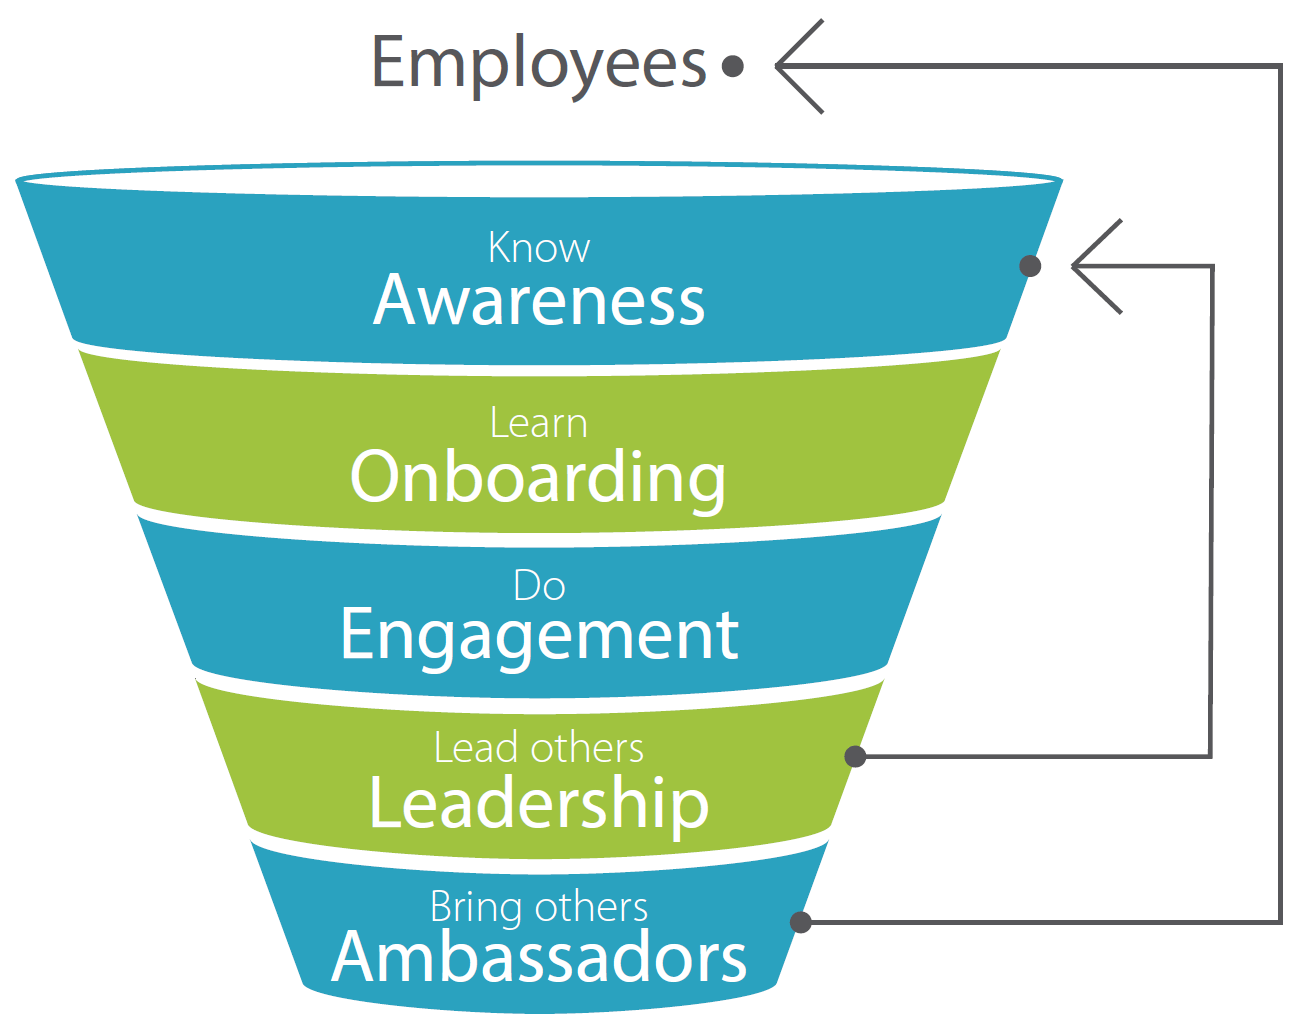 Using Flow Theory and Gamification in the Content of the Employee Engagement Funnel